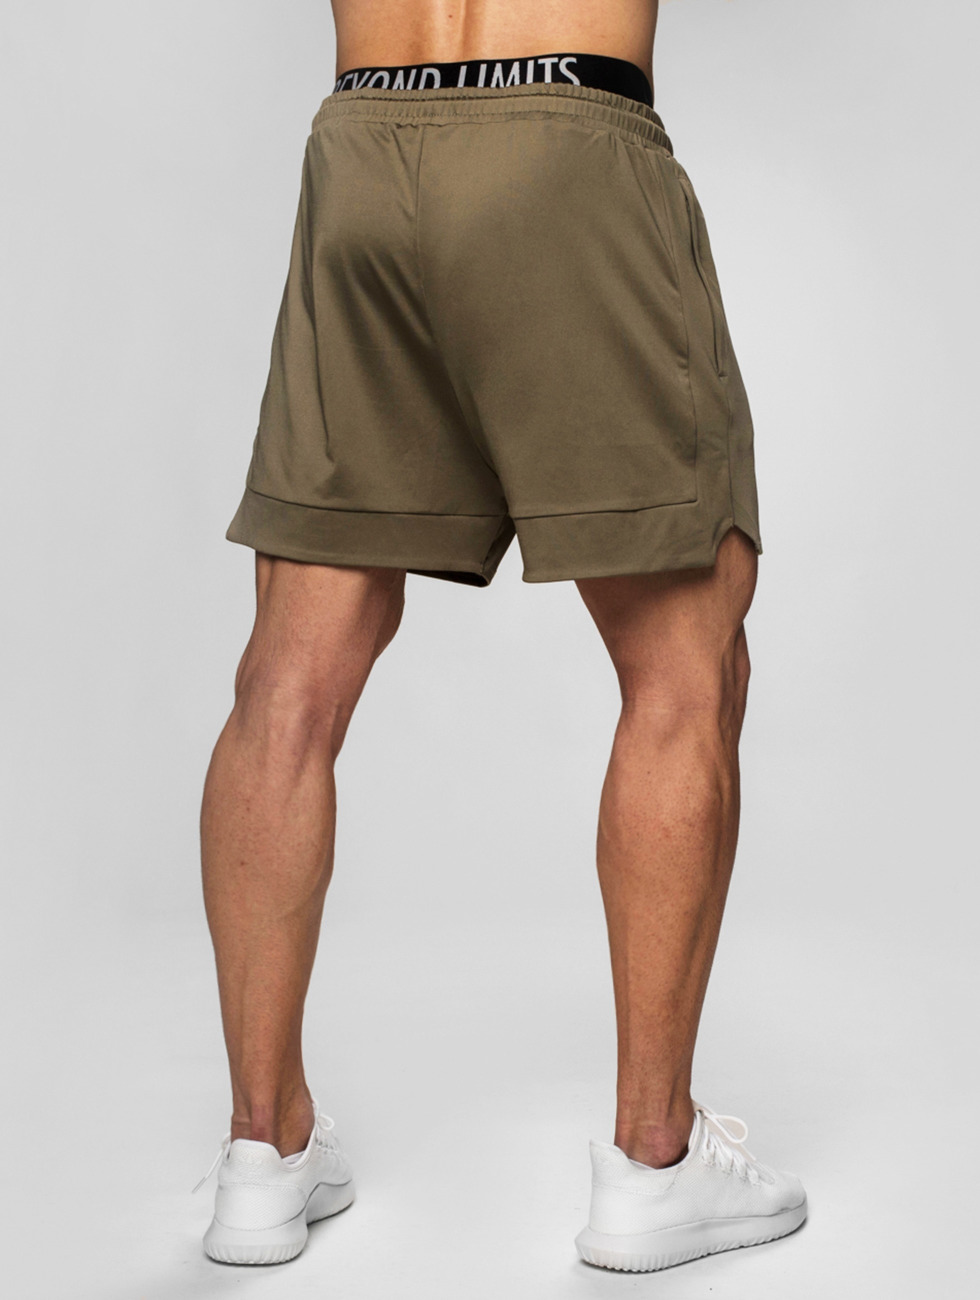 Beyond Limits Shorts Agility cachi